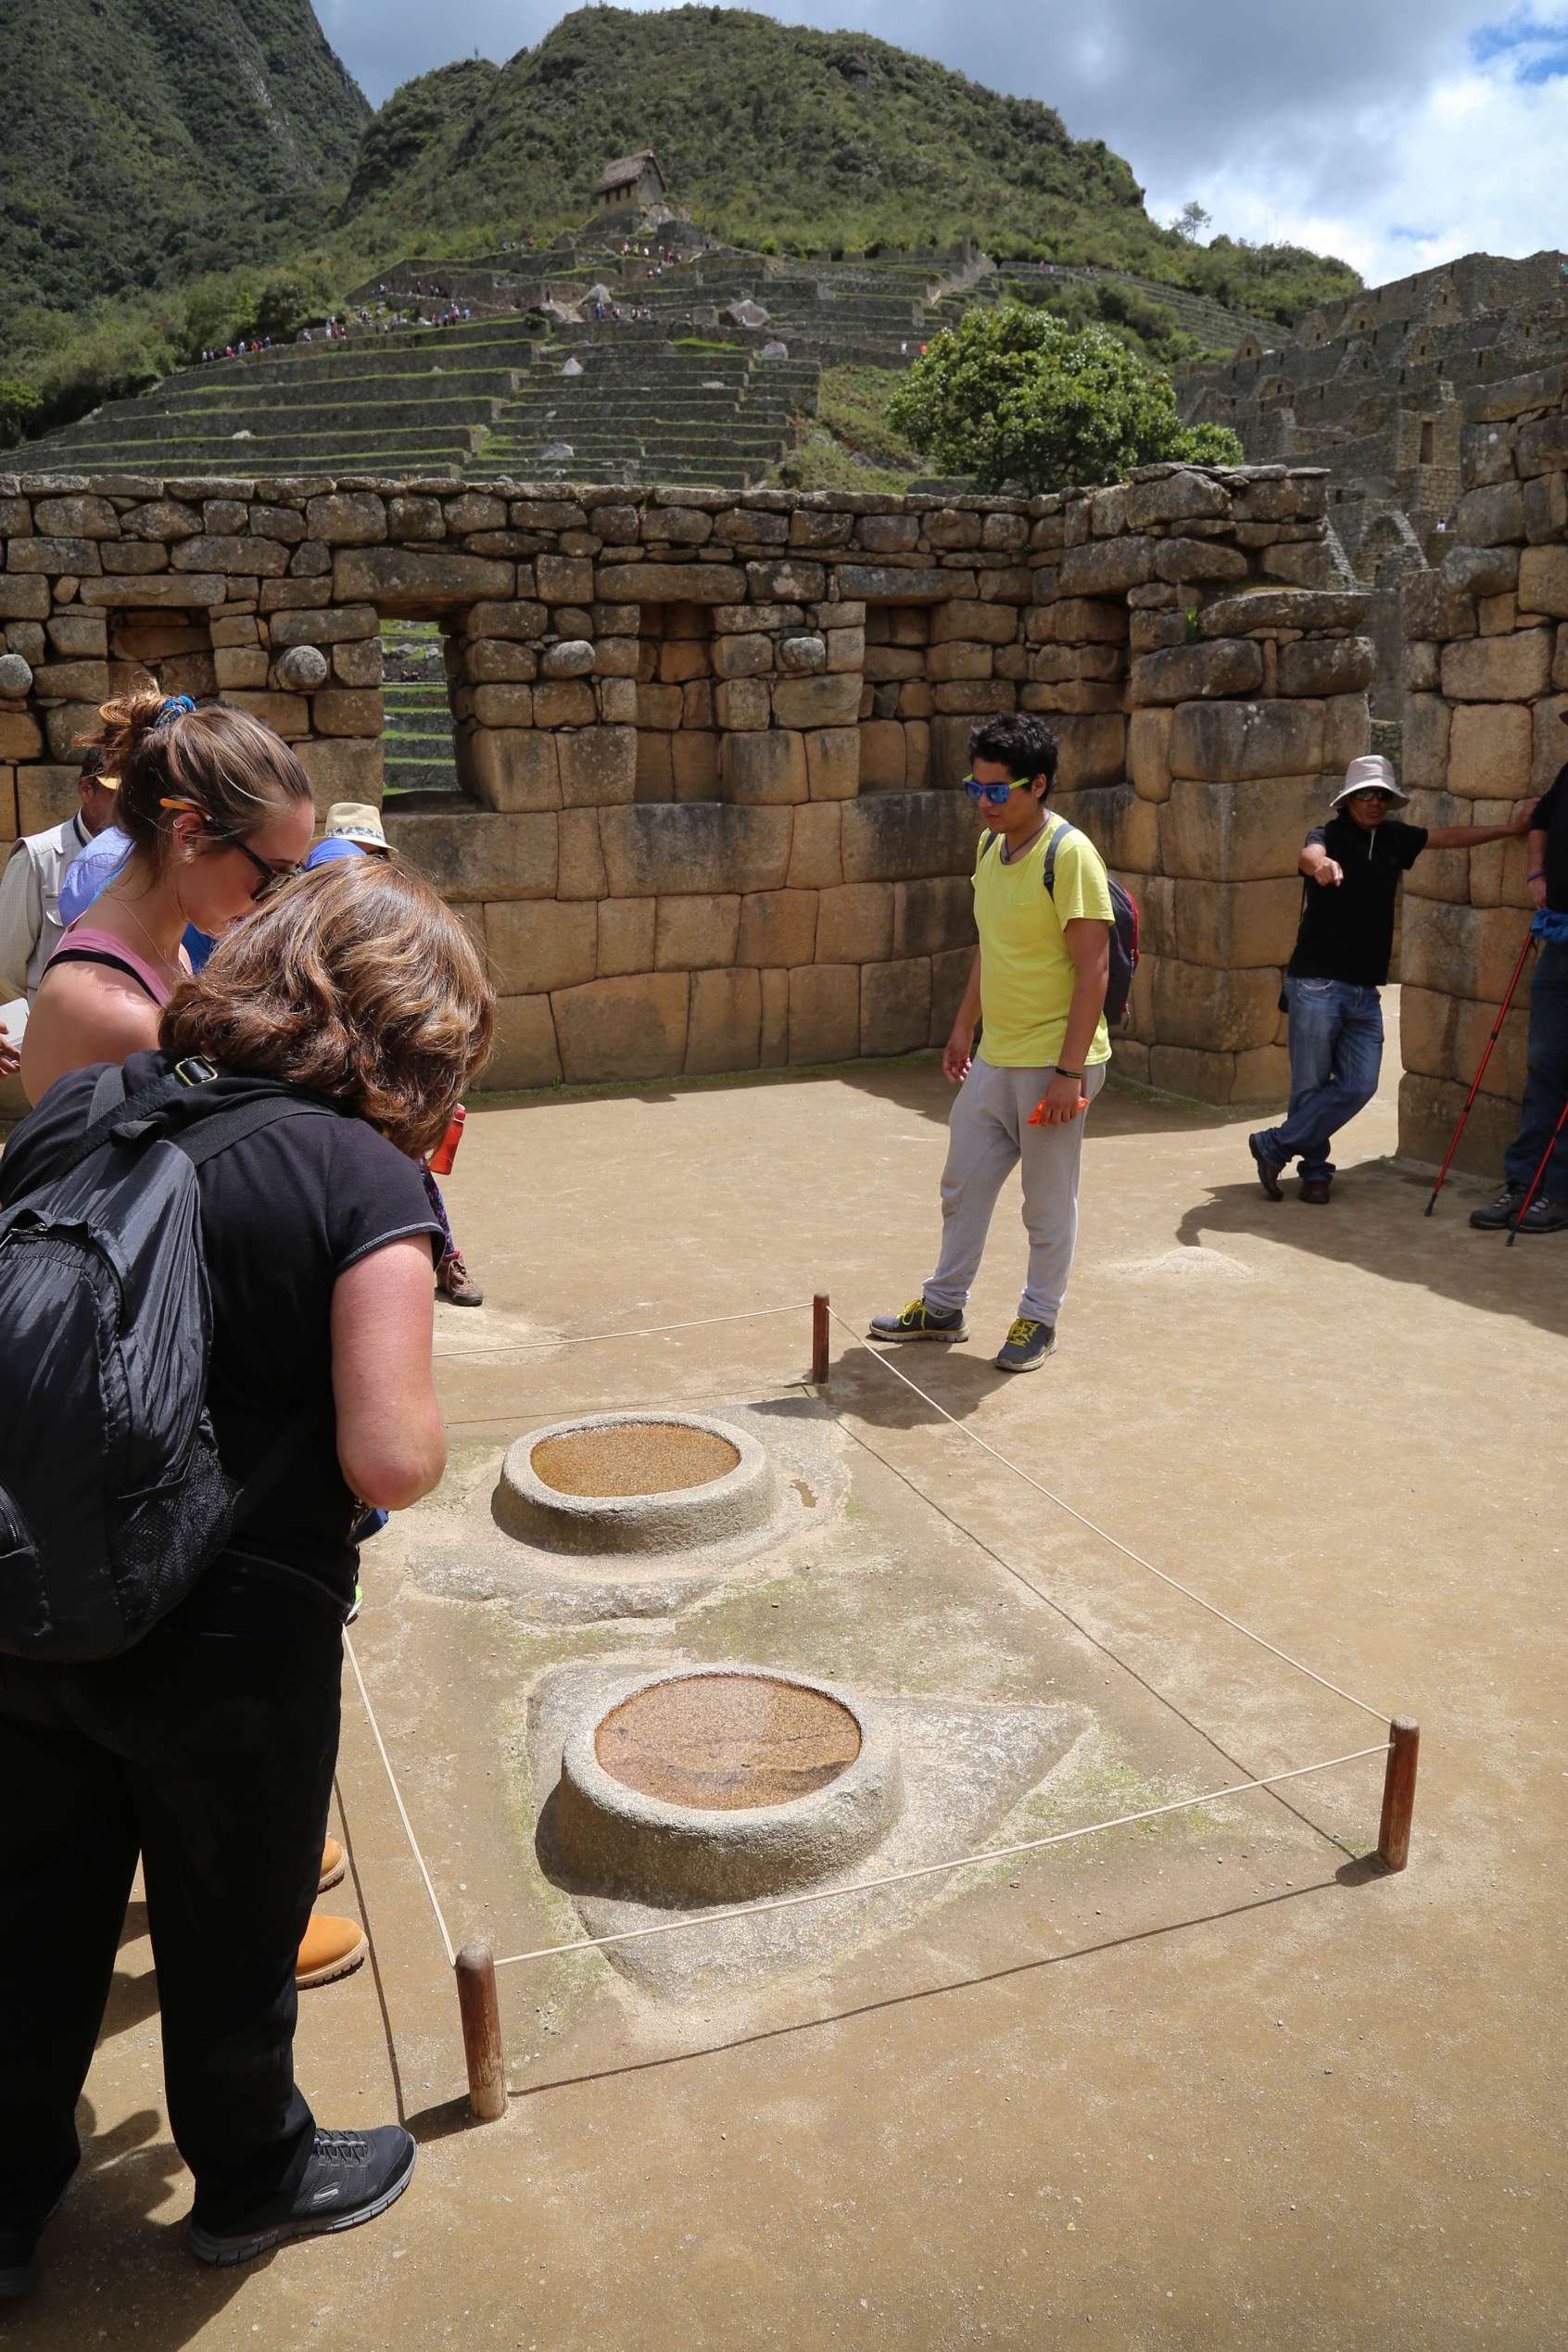 Visitors stare into the water fill bowls while a guide explains they were a type of observatory to watch the sun and heavens. Knowing the celestial and seasonal events was also part of Inca skill.